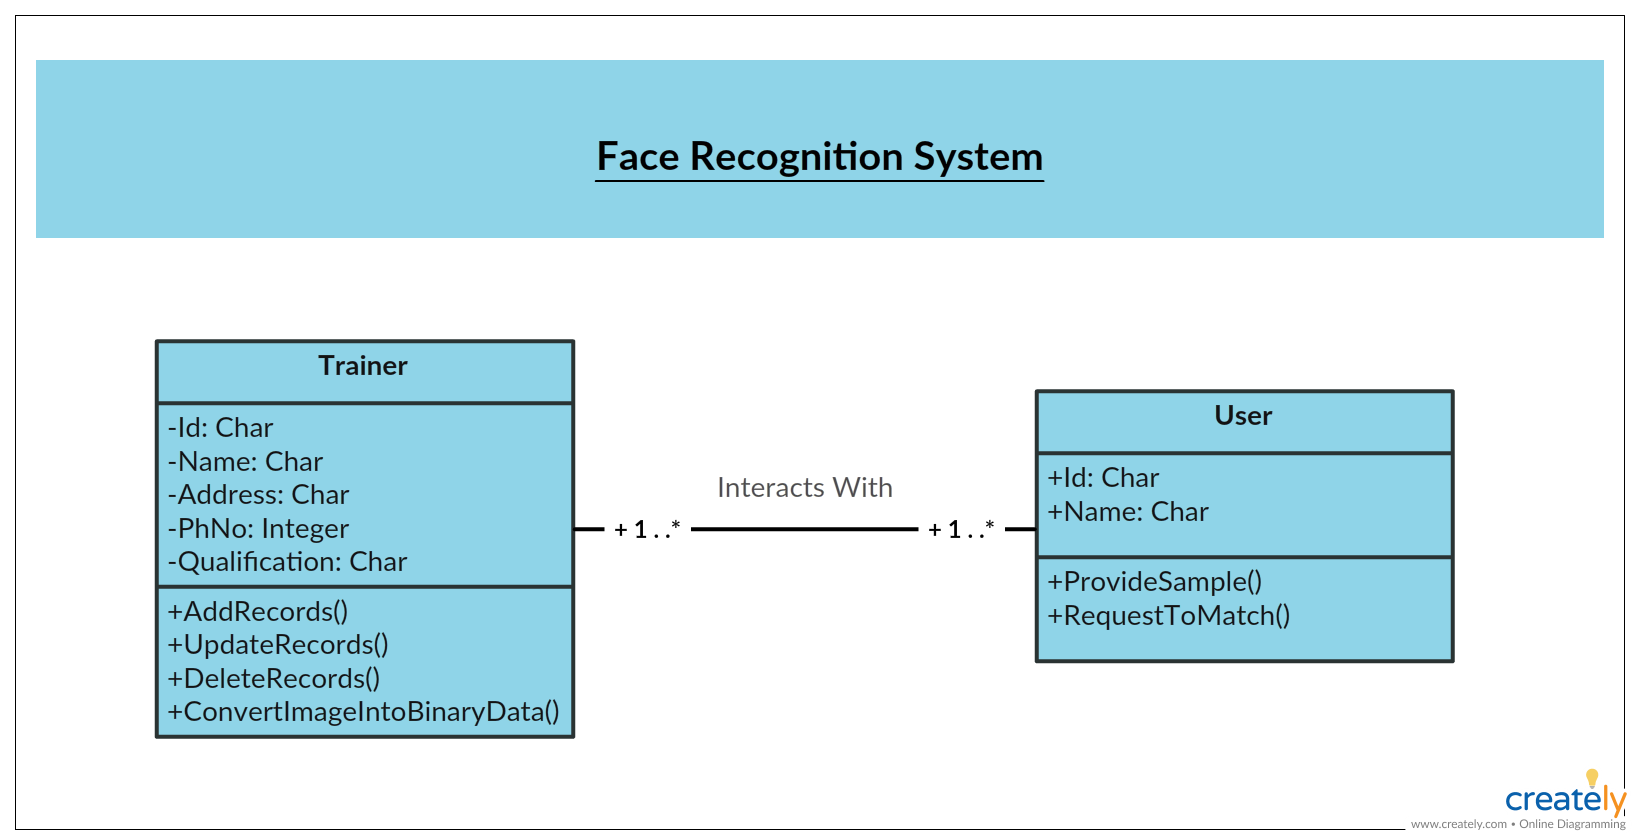 uml class diagram example face recognition system class diagram template click on the diagram to easily modify as per your requirement  [ 1640 x 840 Pixel ]